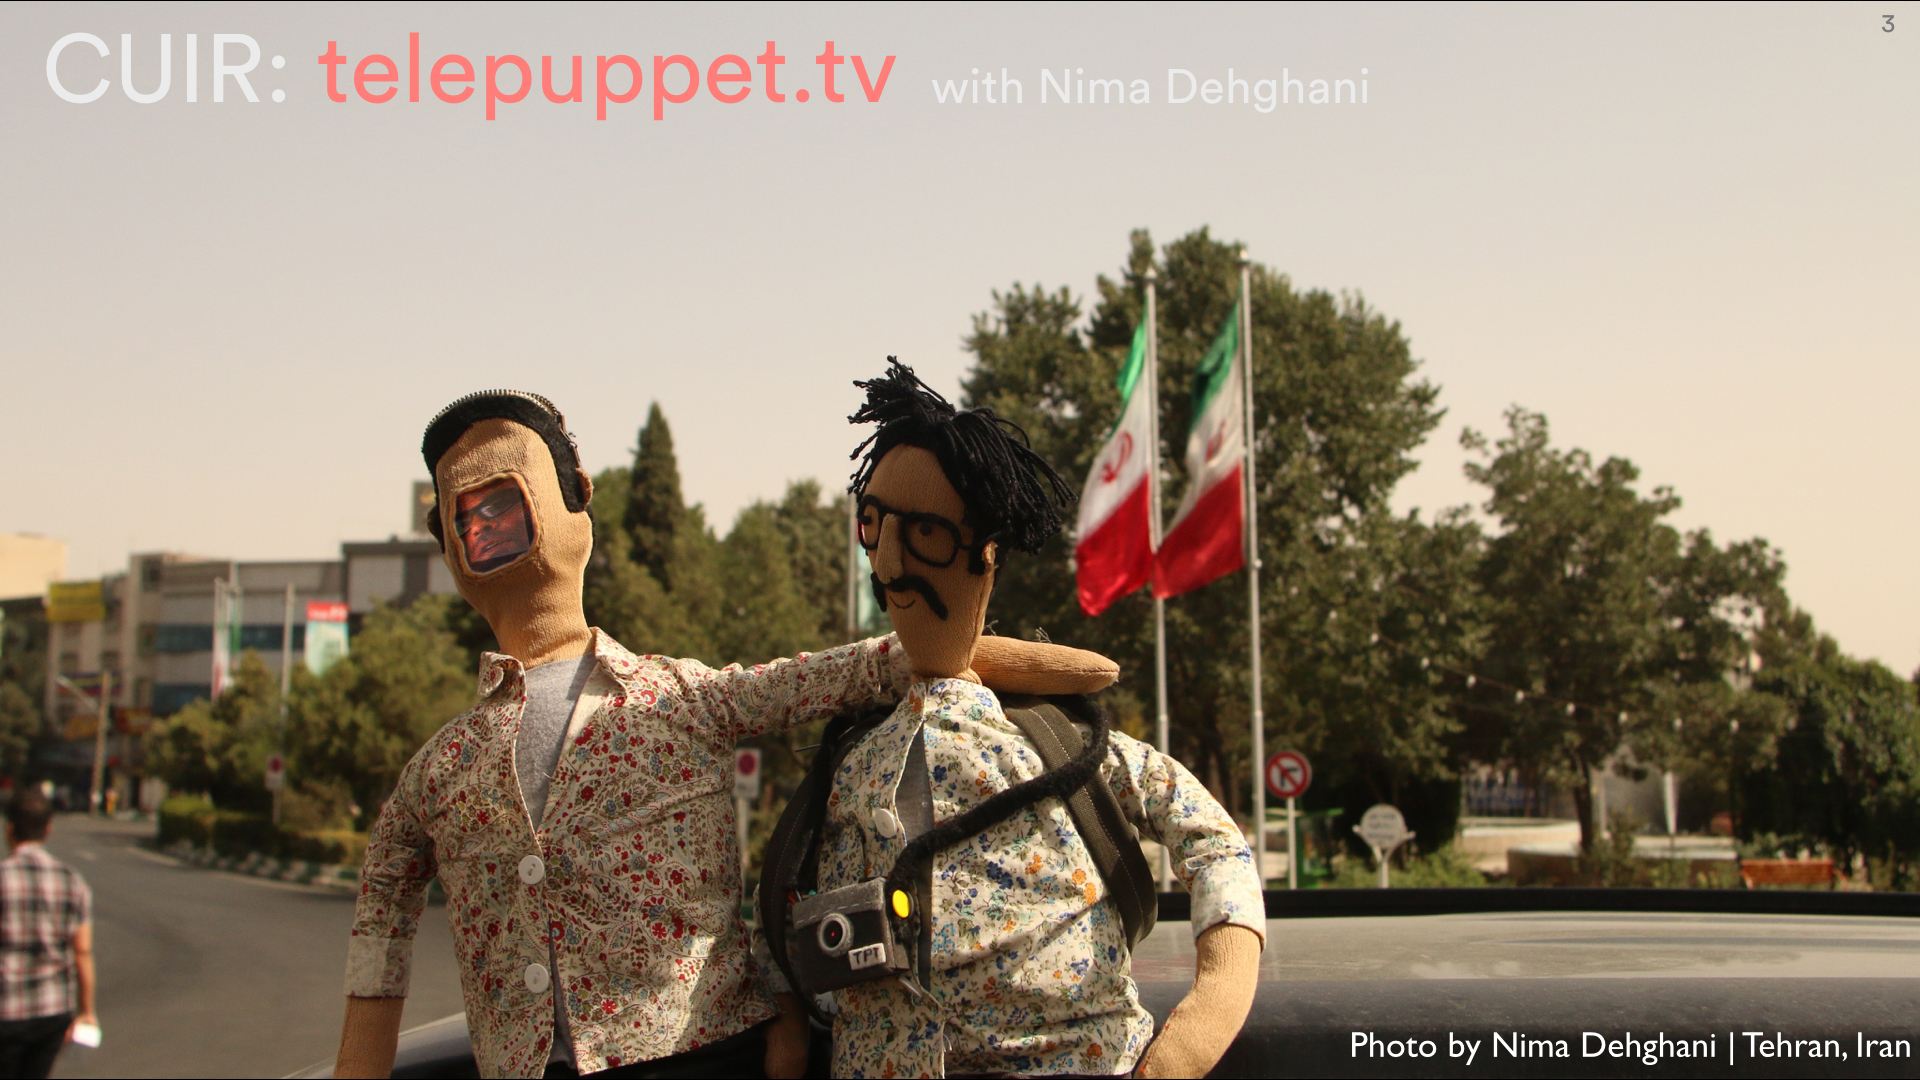 Telepuppets return to Iran